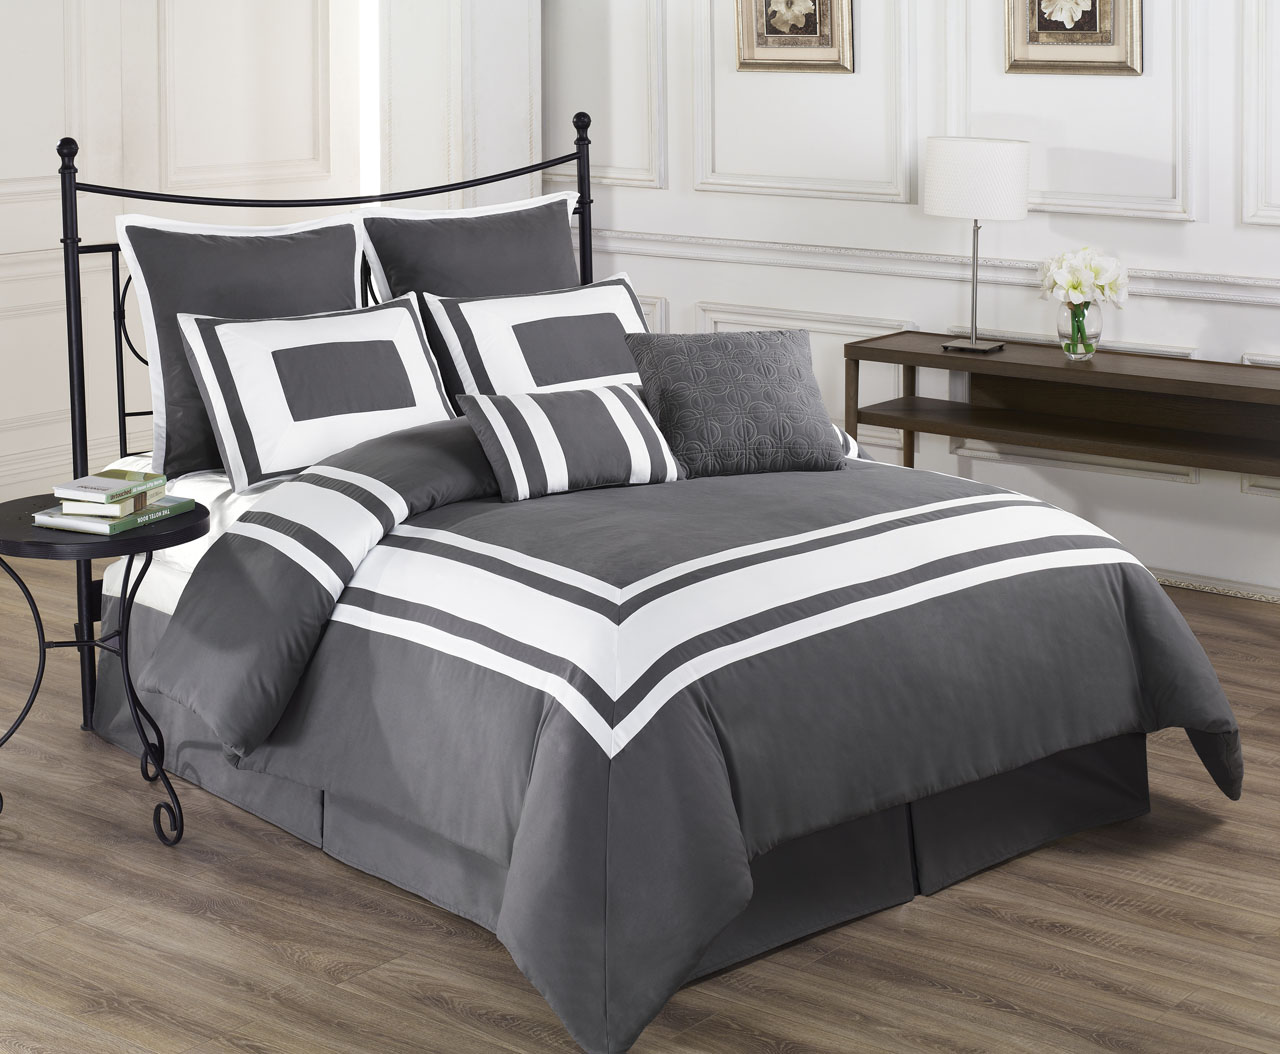 King Size Bed Sheet Set Grey White Stripe